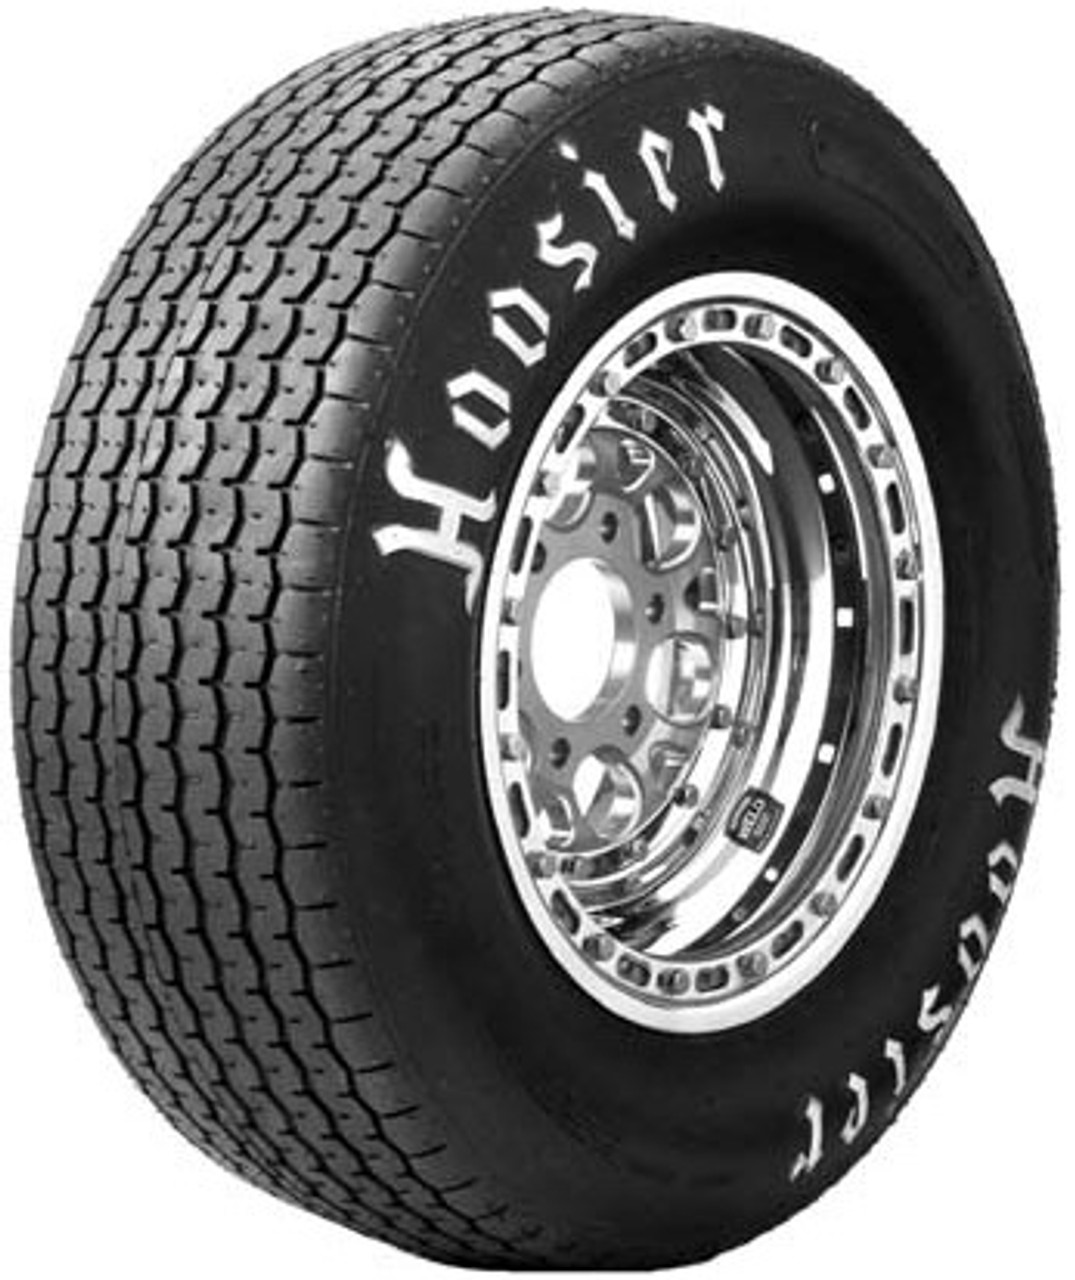 Hoosier Quick Time D.O.T. Drag Racing Tire